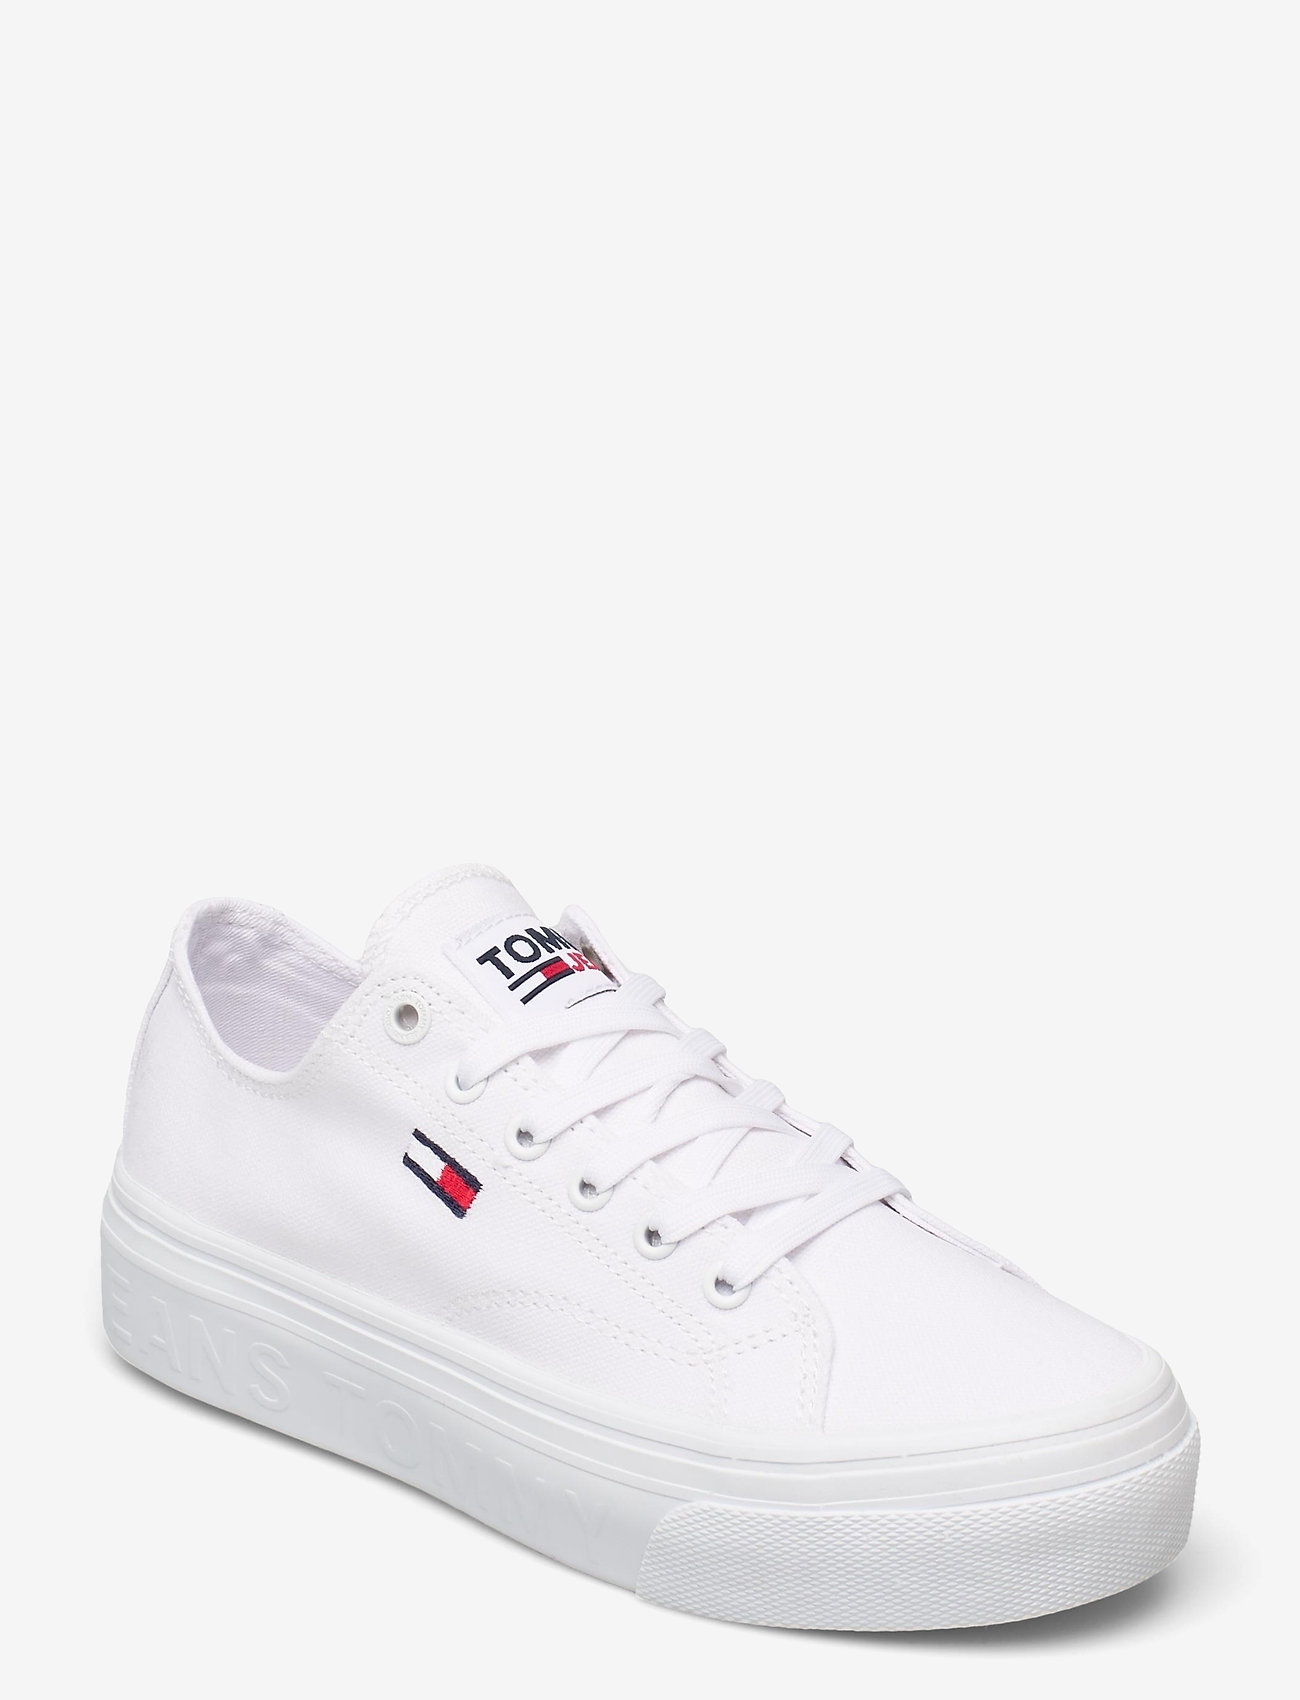 Tommy Hilfiger - TOMMY JEANS FLATFORM VULC - sneakers - white - 0